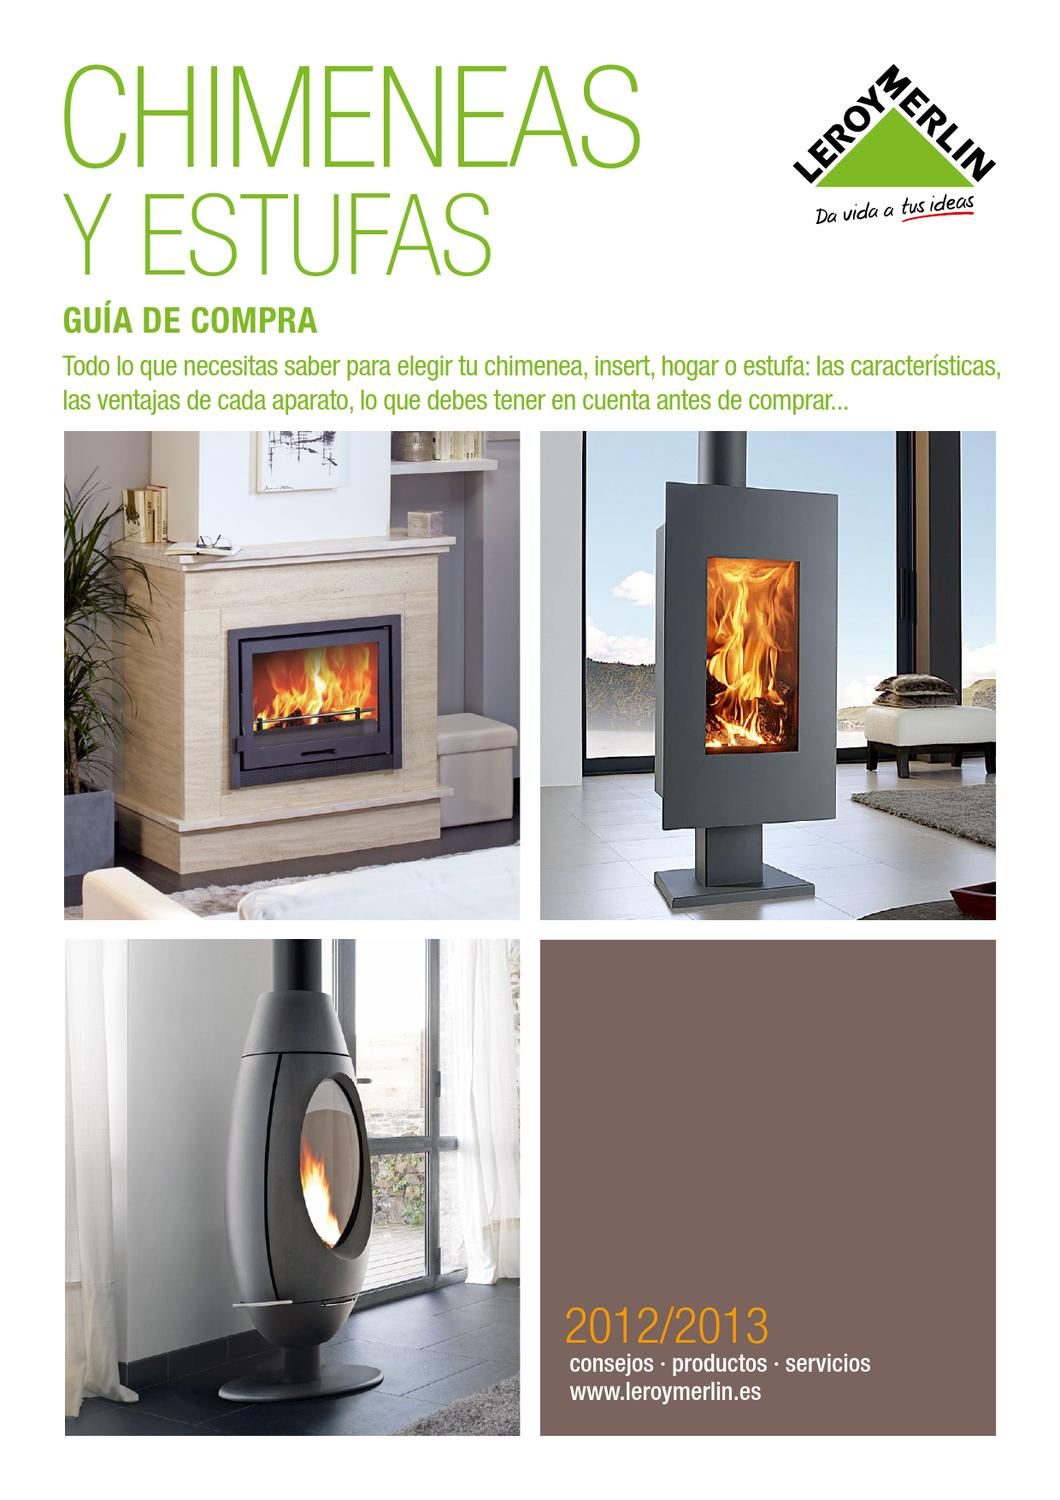 Leroy merlin catalogo gu a de chimeneas by hackos ecc issuu - Adaptar chimenea para calefaccion ...